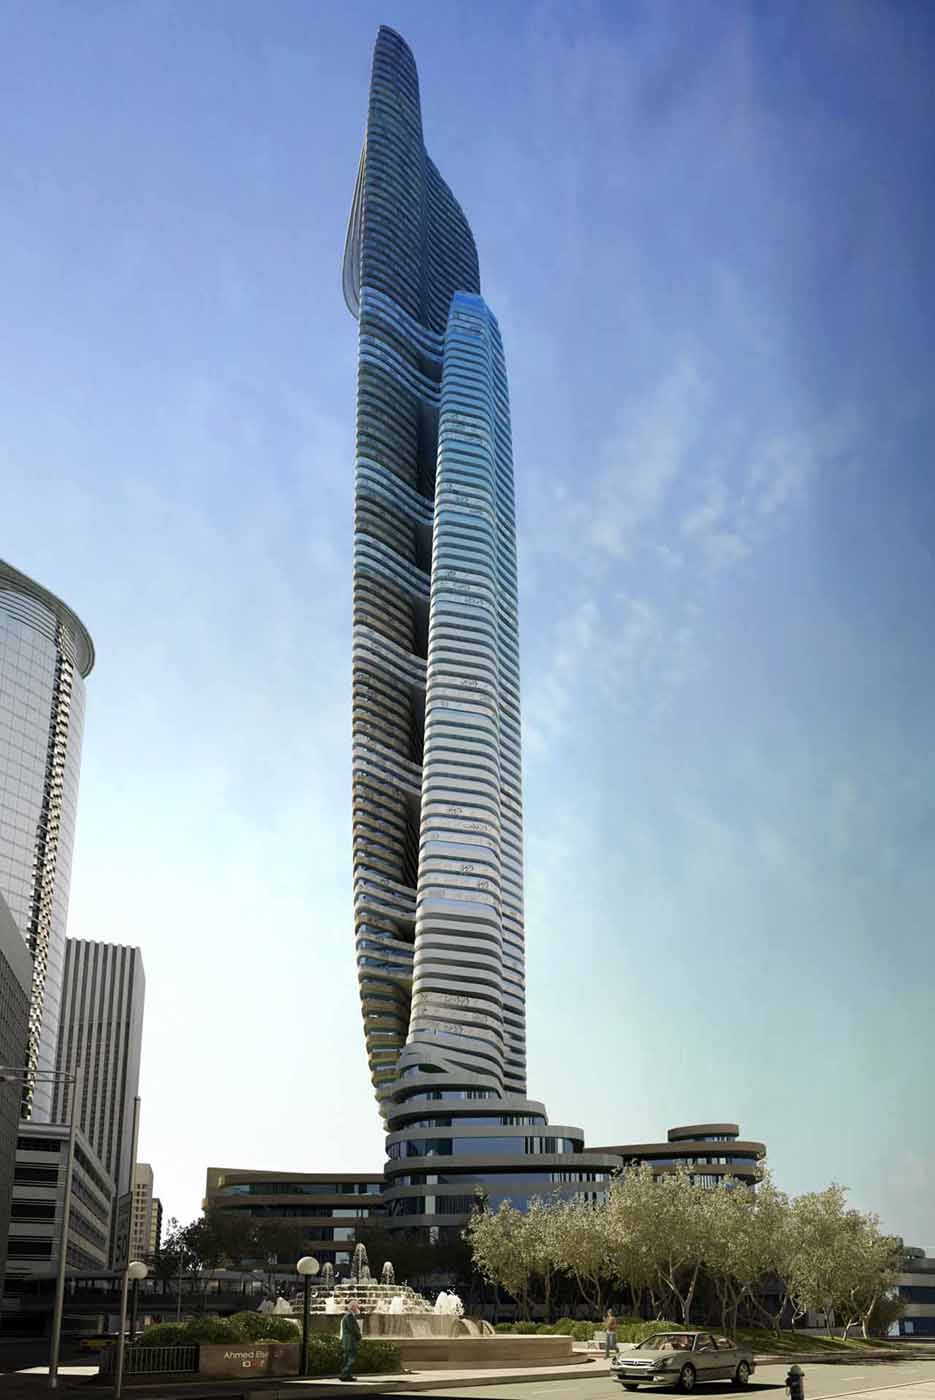 Father and son skyscraper iamz studio egypt for Contemporary architecture design concept